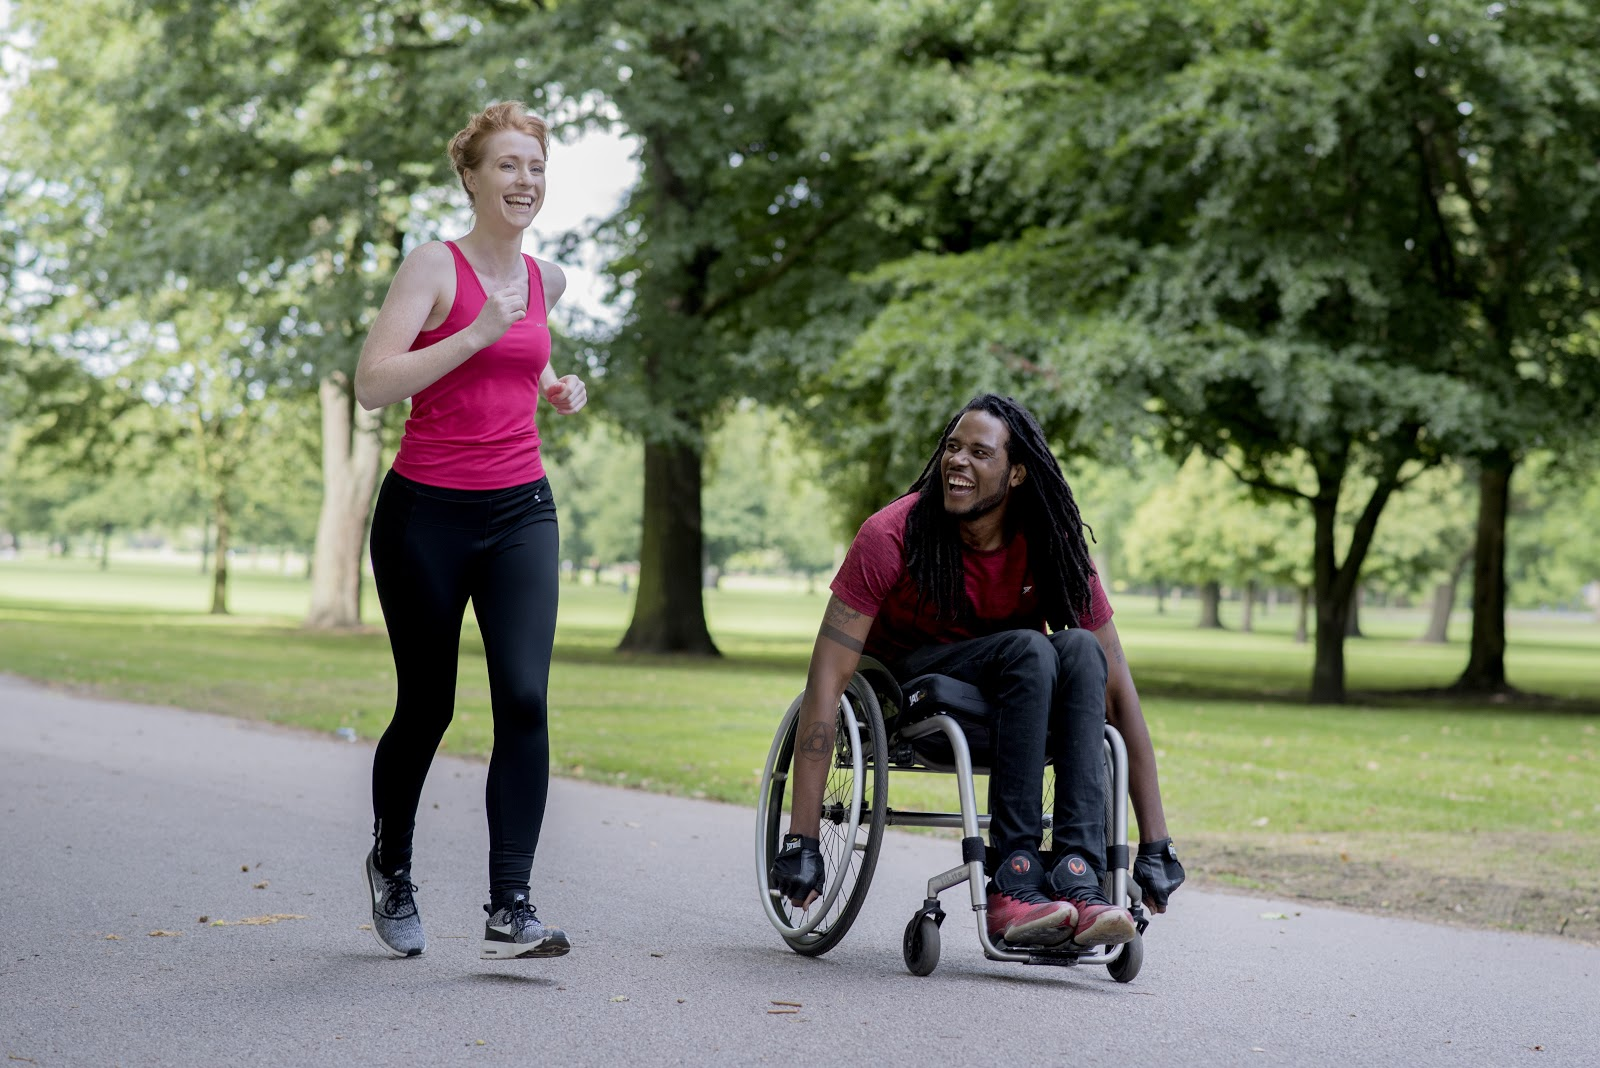 A woman in a pink t-shirt running alongside a man in a wheelchair through a park. Both are laughing.